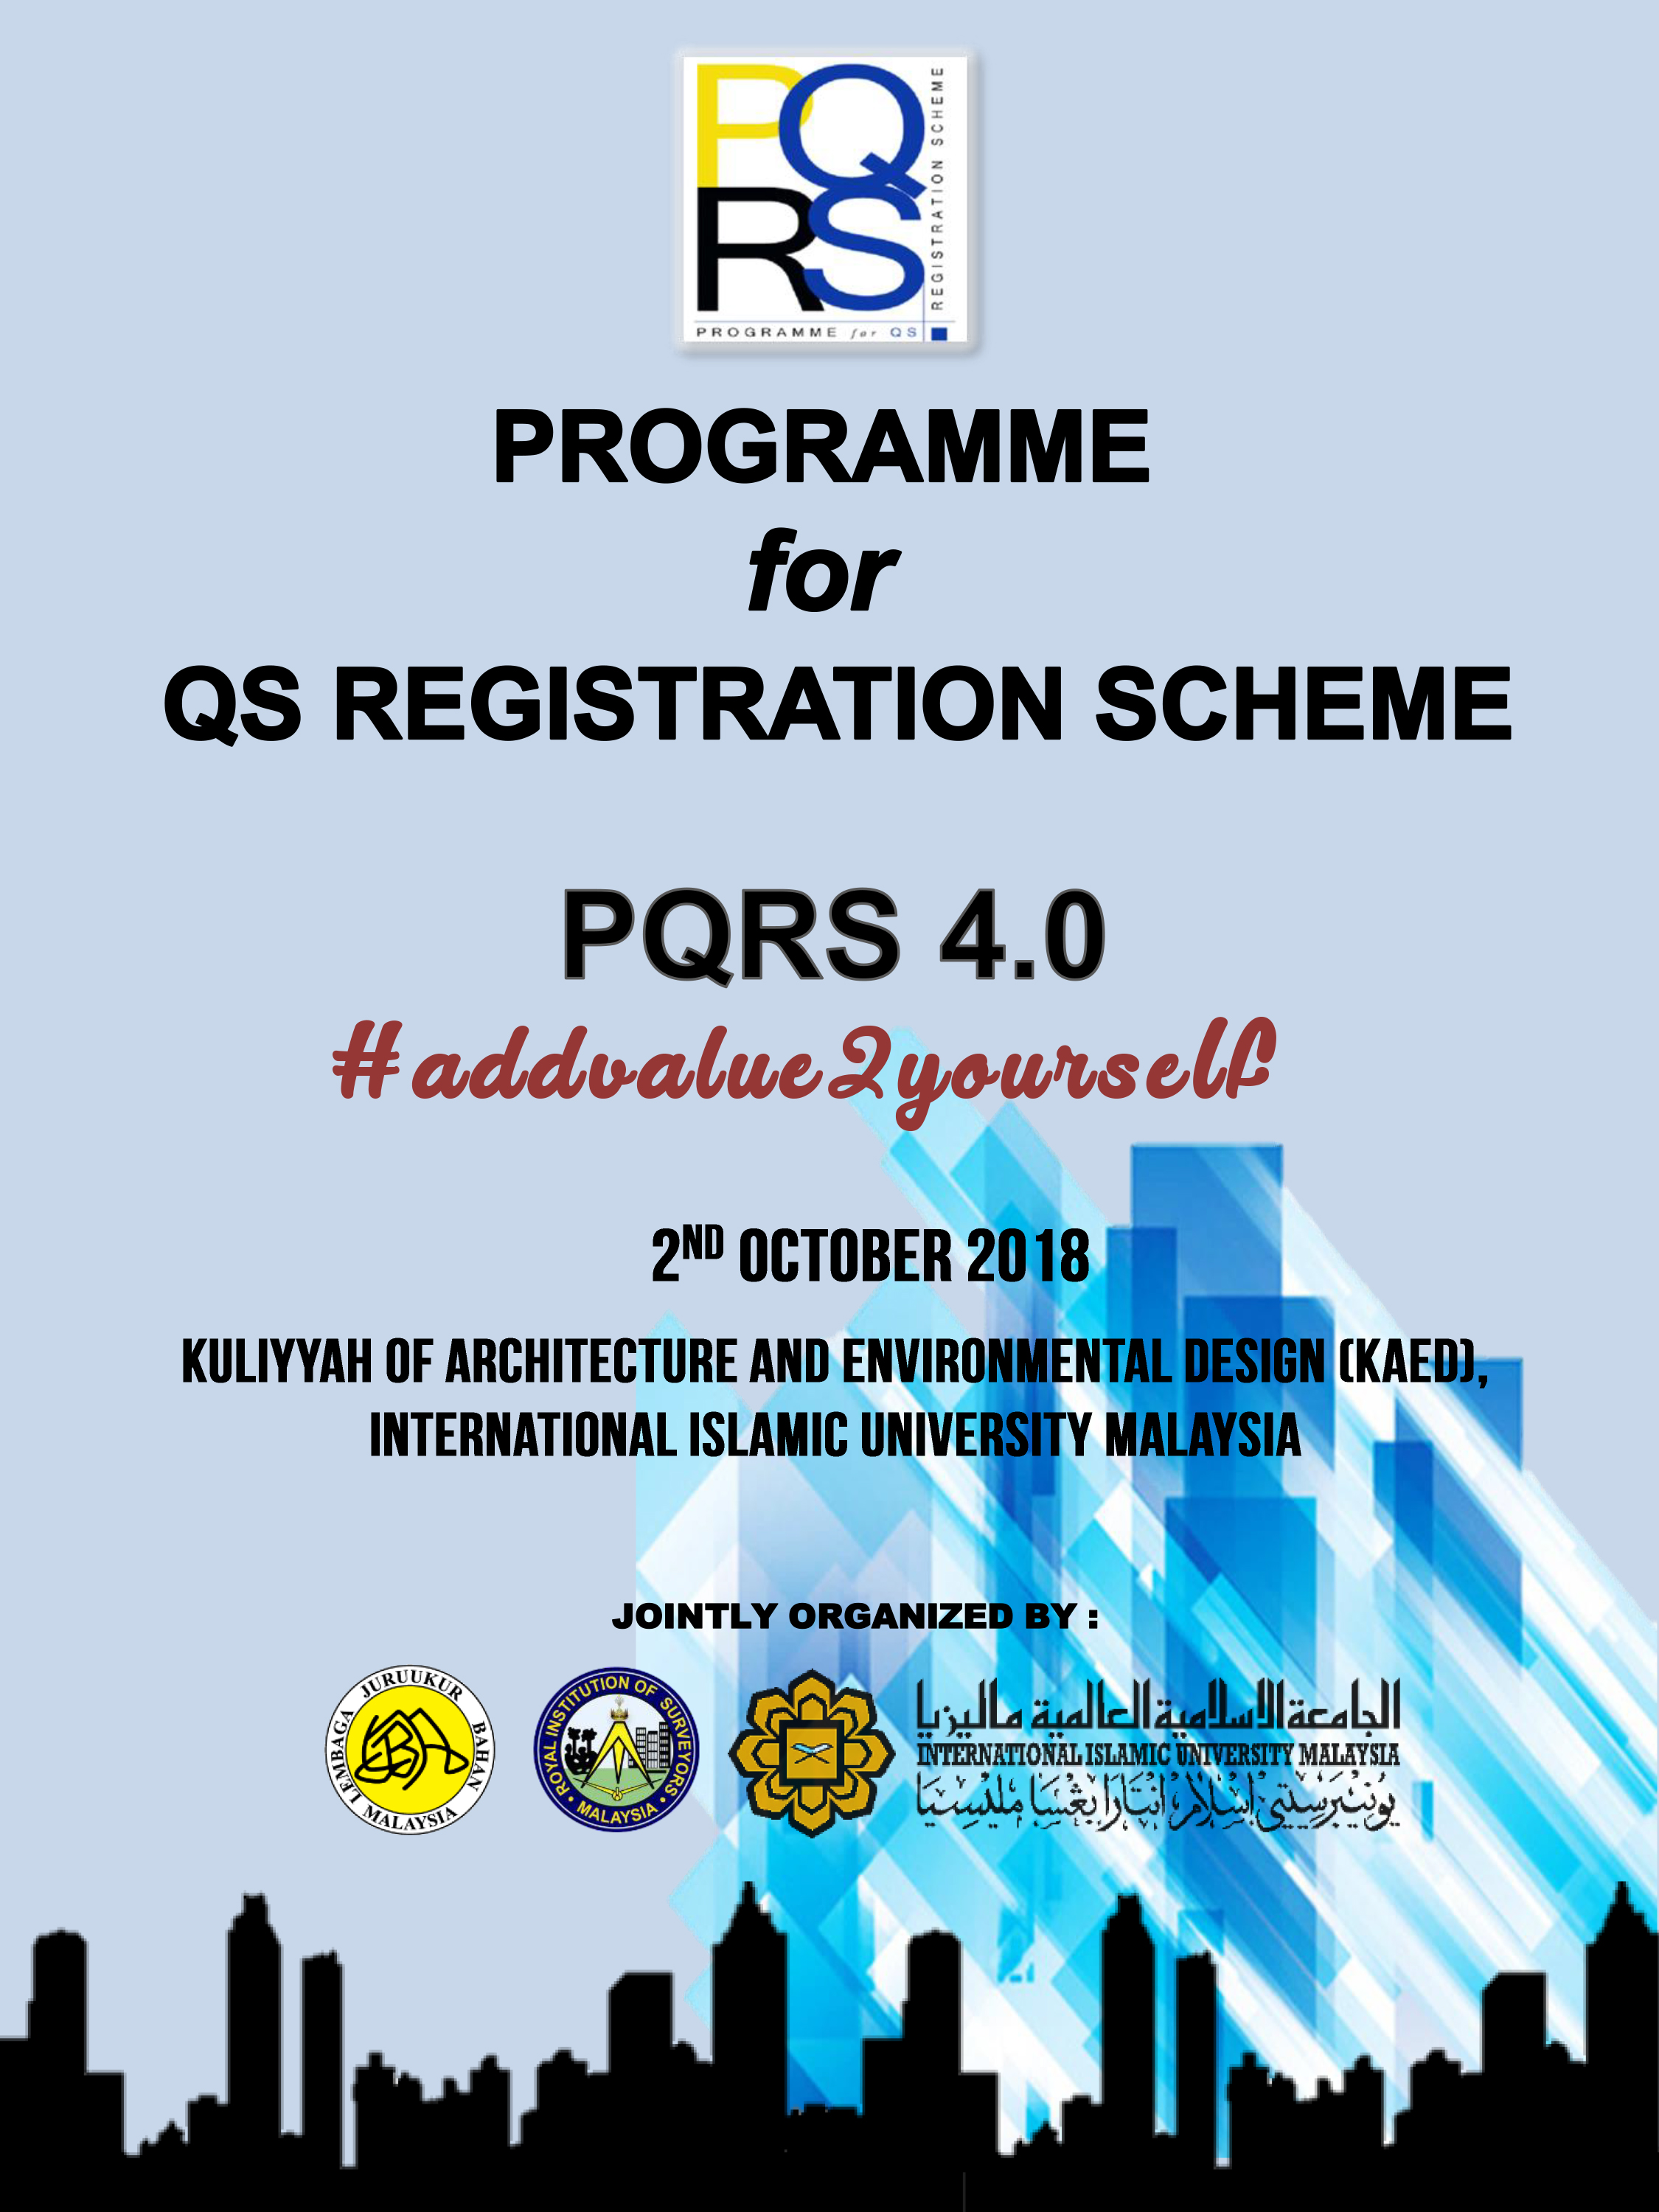 PQRS 4.0 : #addvalue2yourself